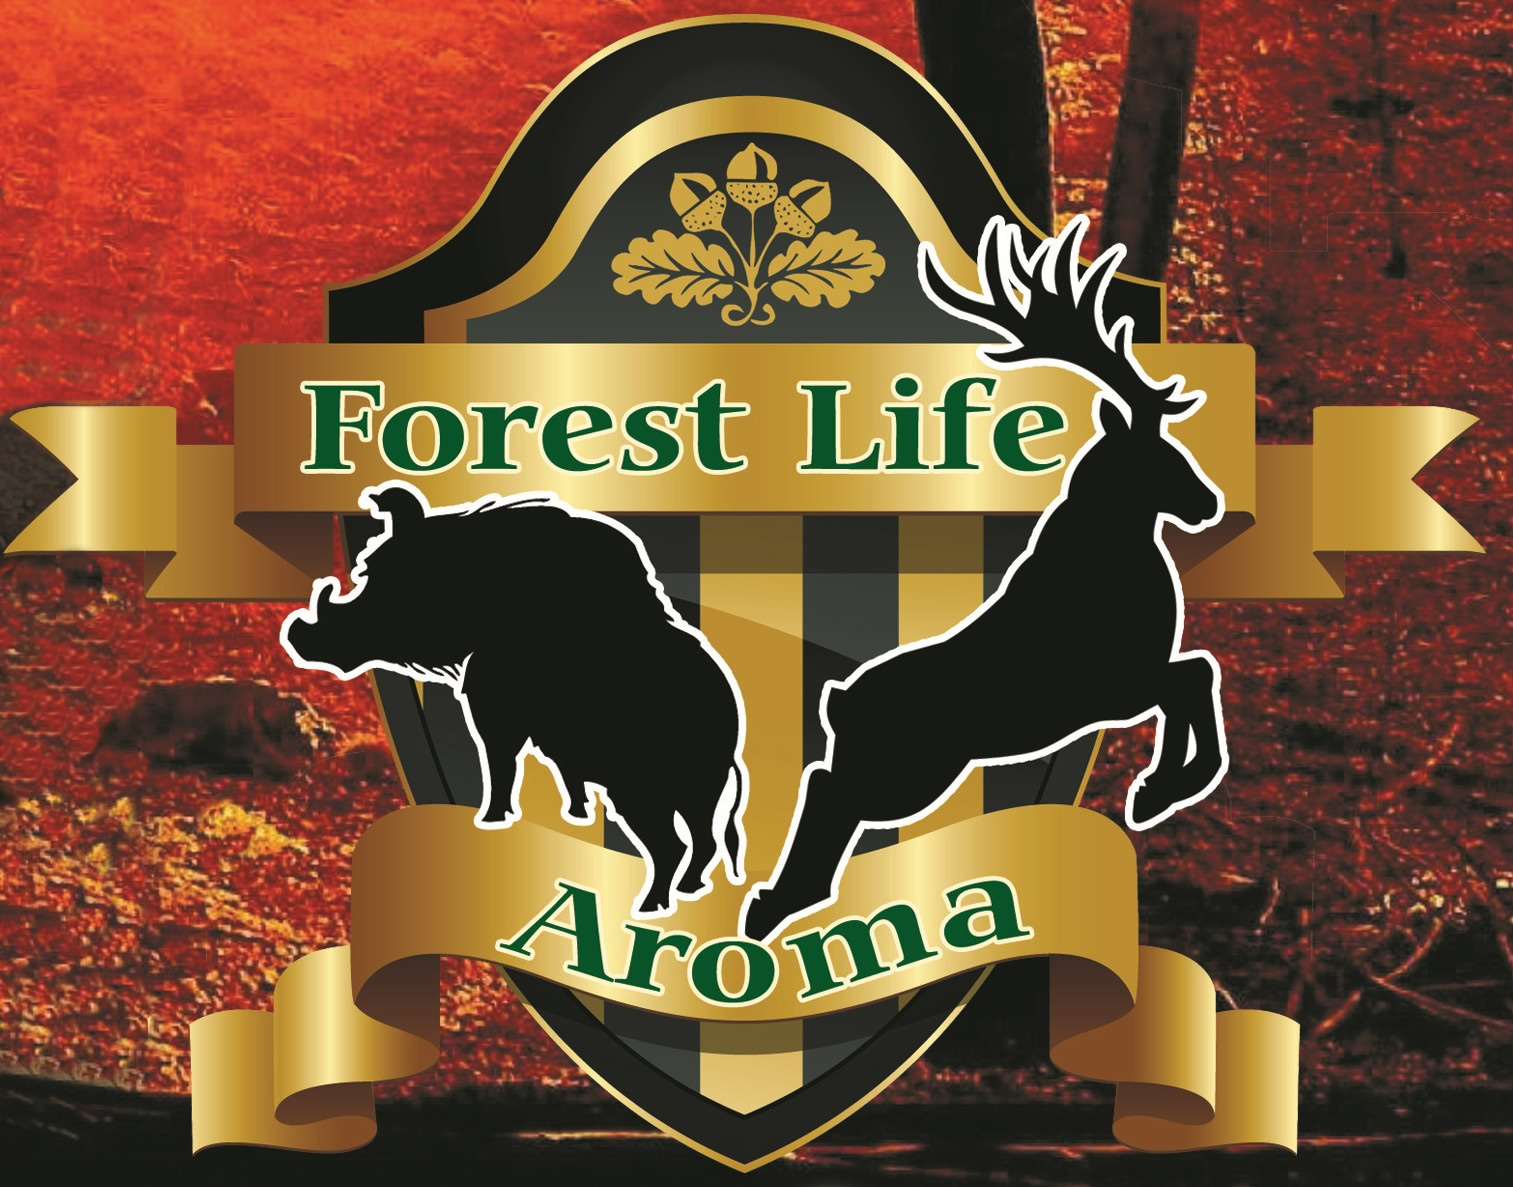 Forest Life kukorica aroma 1l